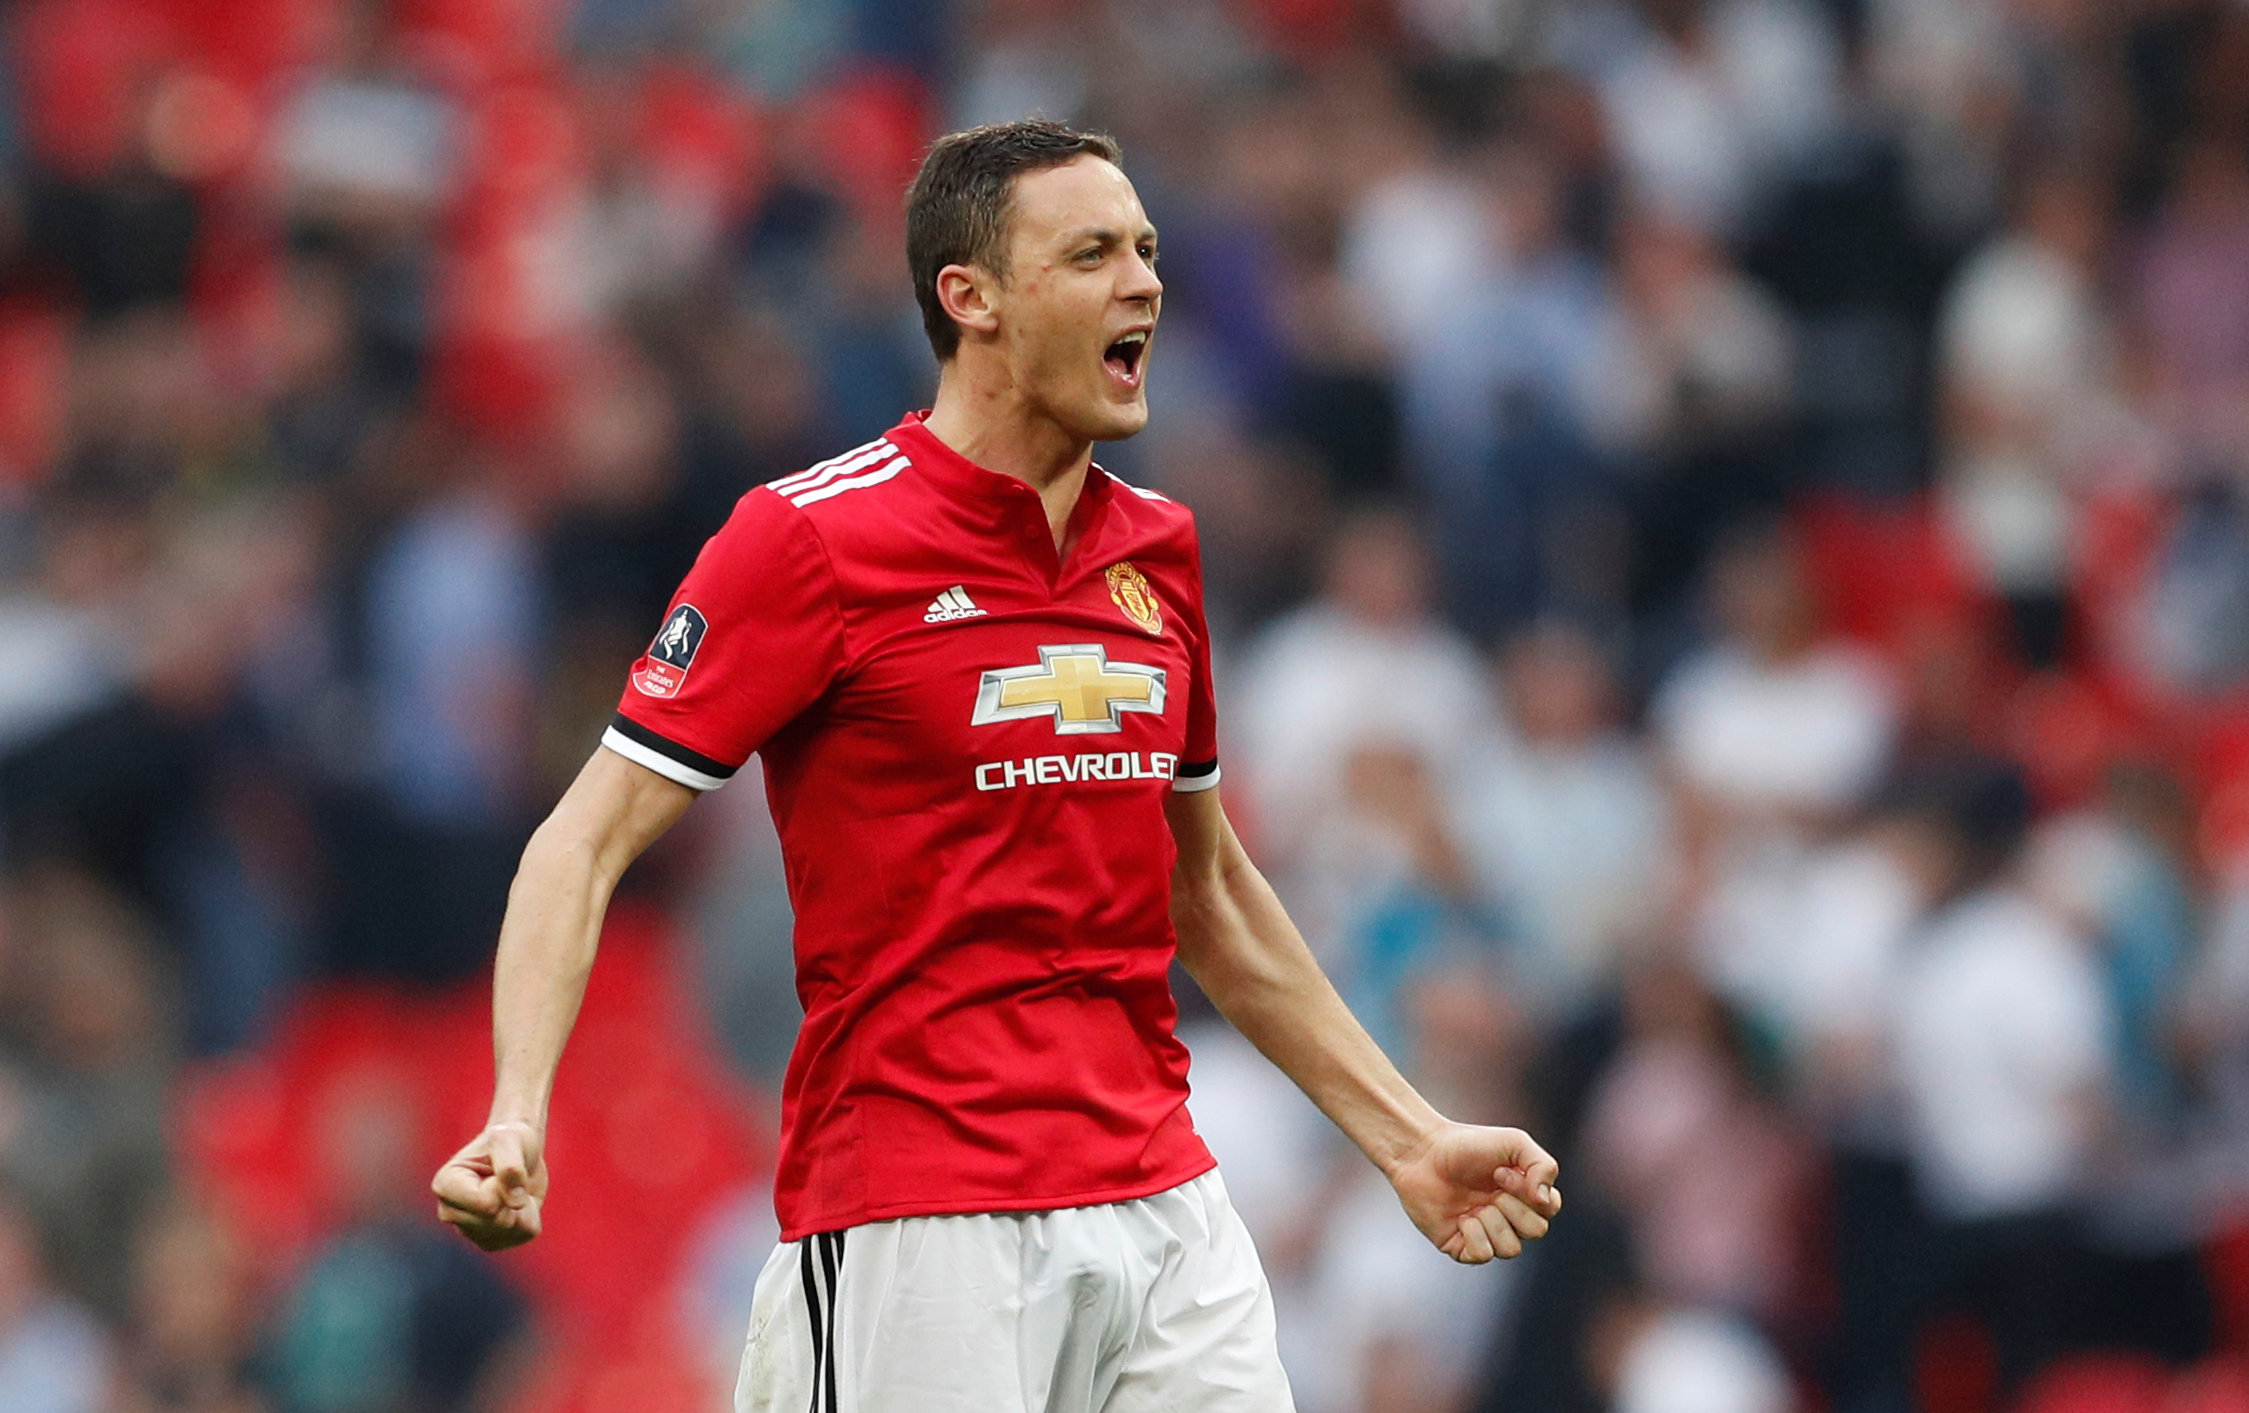 'Few can stop me, but Matic can' – Manchester City star hails Serbian midfielder